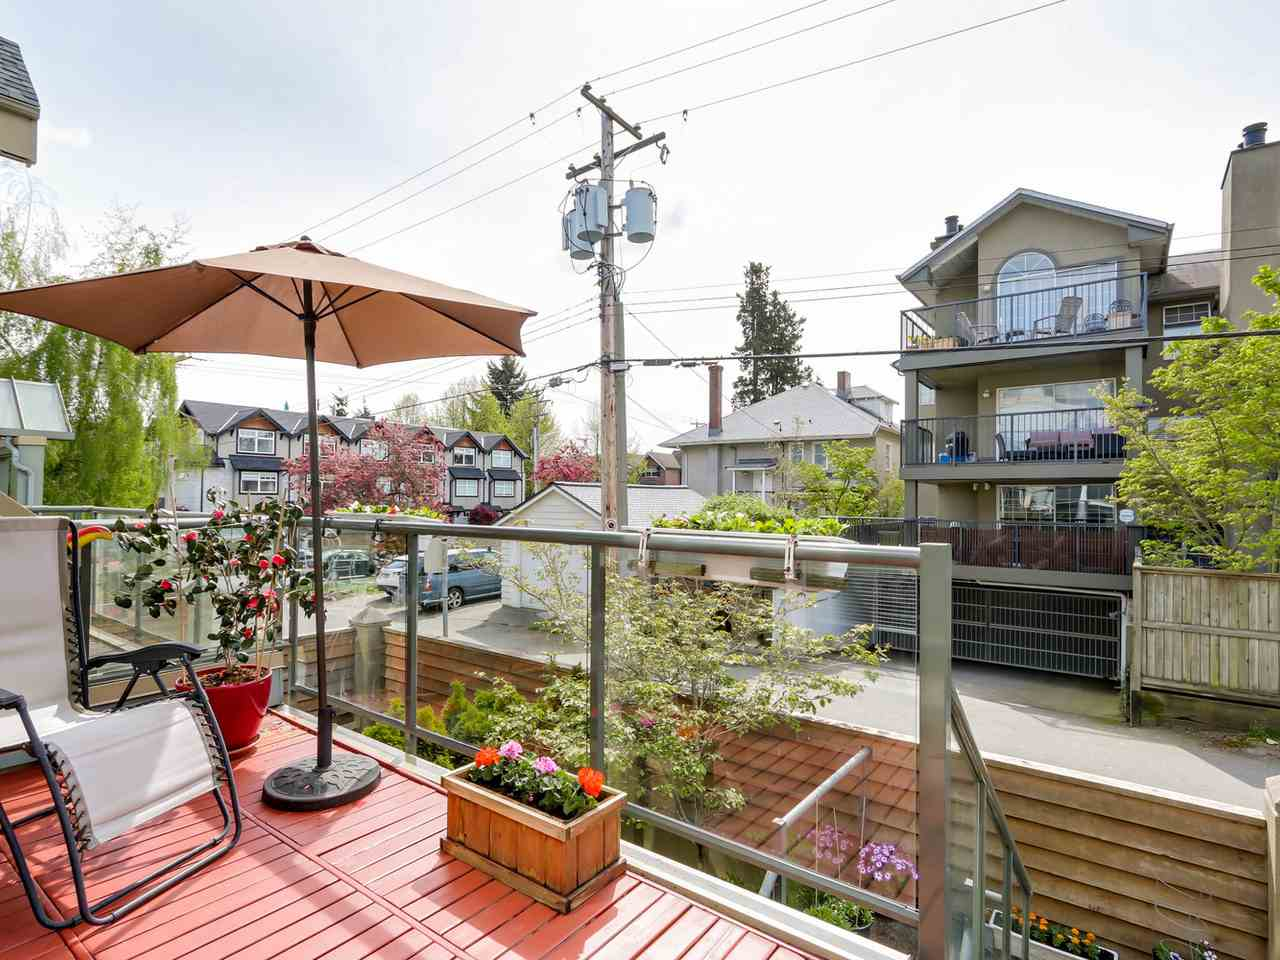 "Photo 9: 3011 LAUREL Street in Vancouver: Fairview VW Townhouse for sale in ""FAIRVIEW COURT"" (Vancouver West)  : MLS® # R2058843"